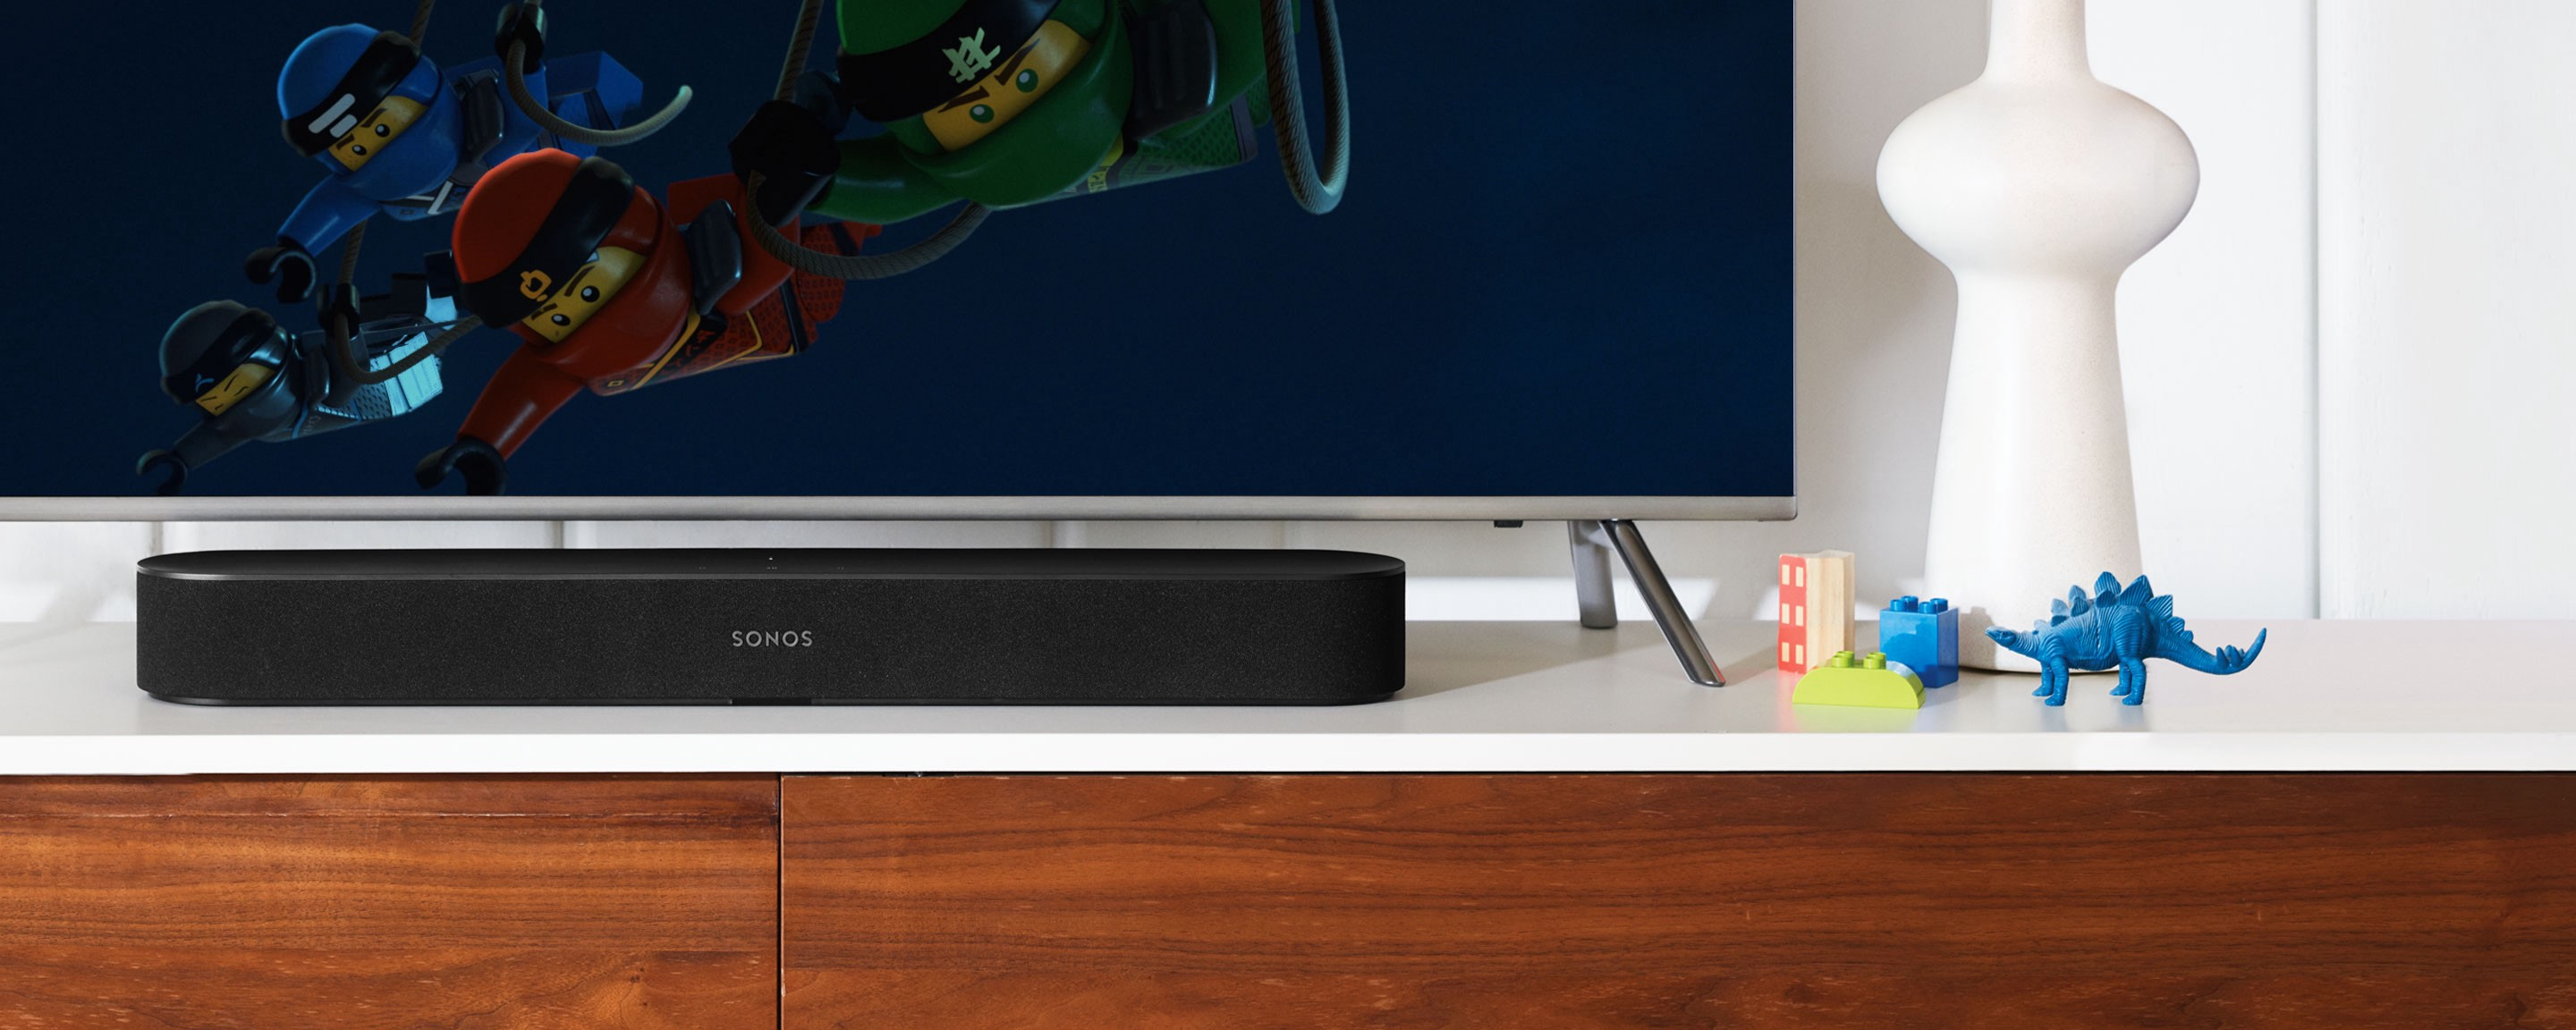 Sony HT-X8500 sound bar aims to take on the Sonos Beam